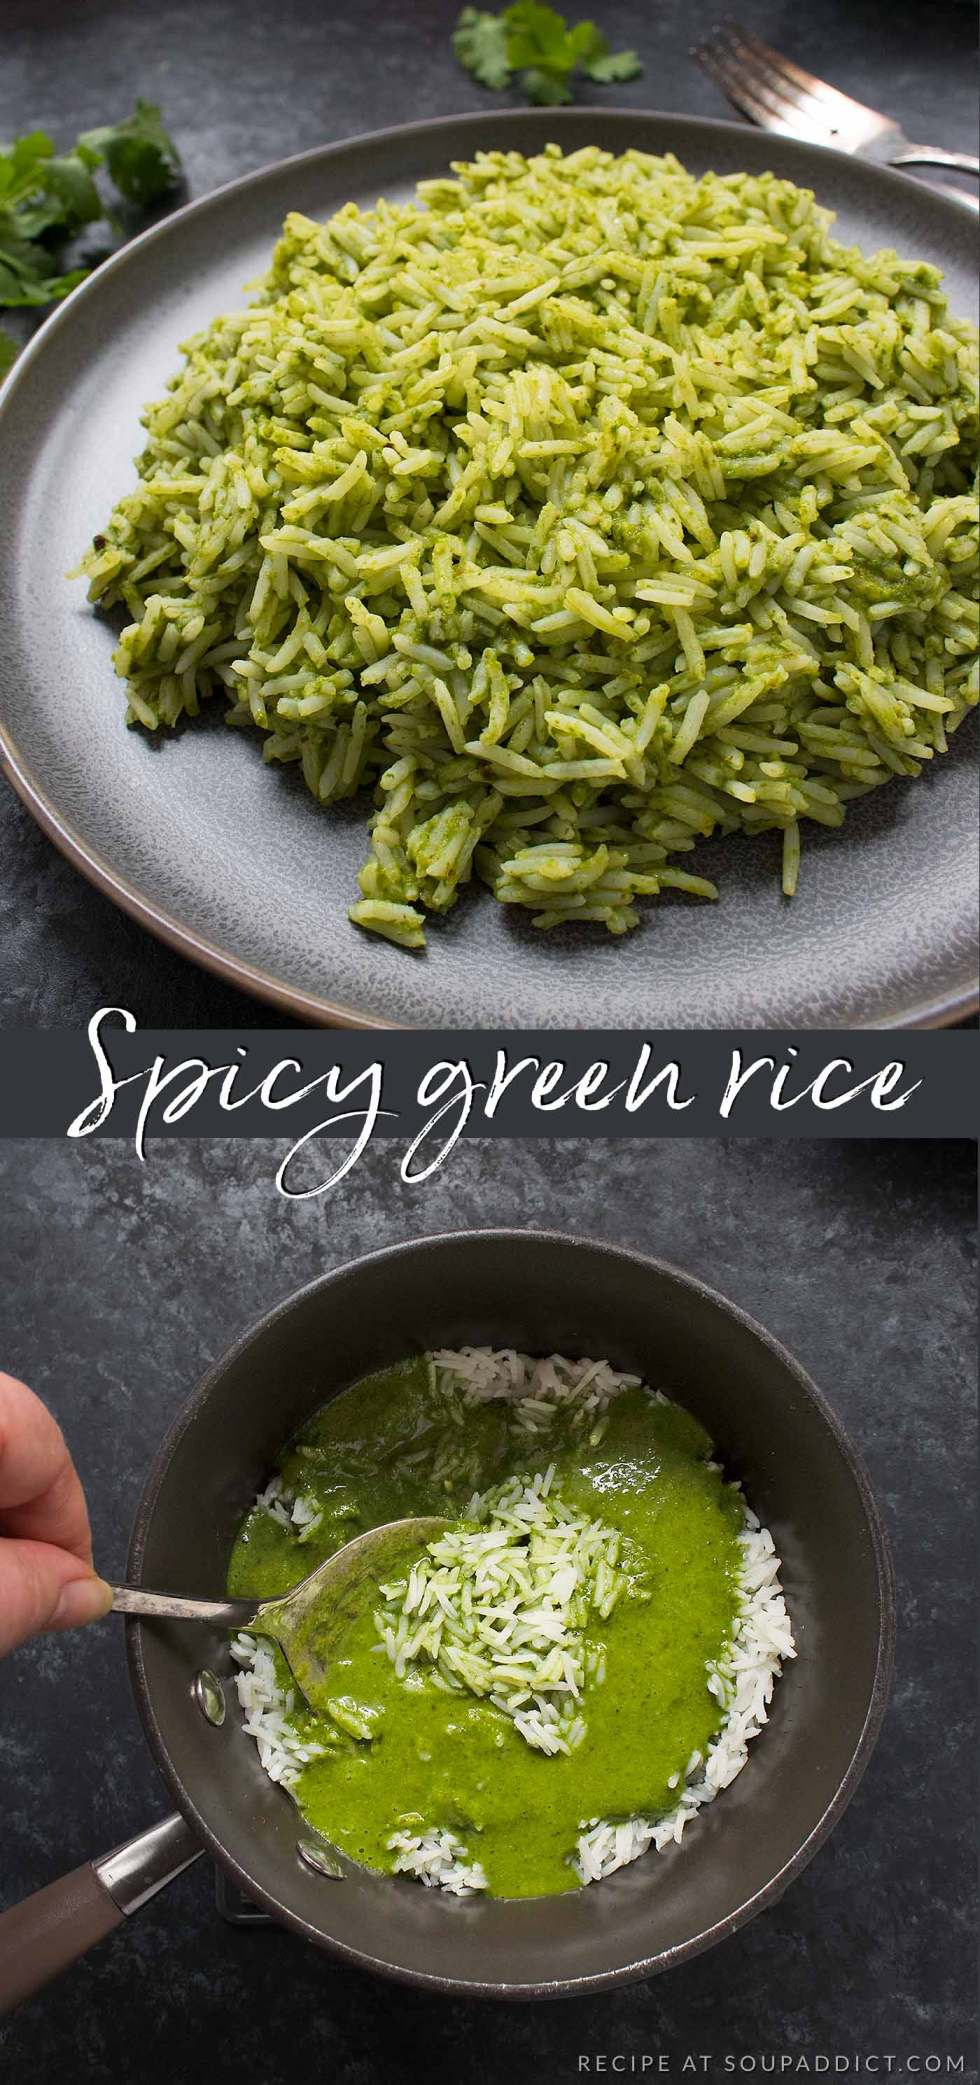 Spicy Green Rice - Recipe at SoupAddict.com